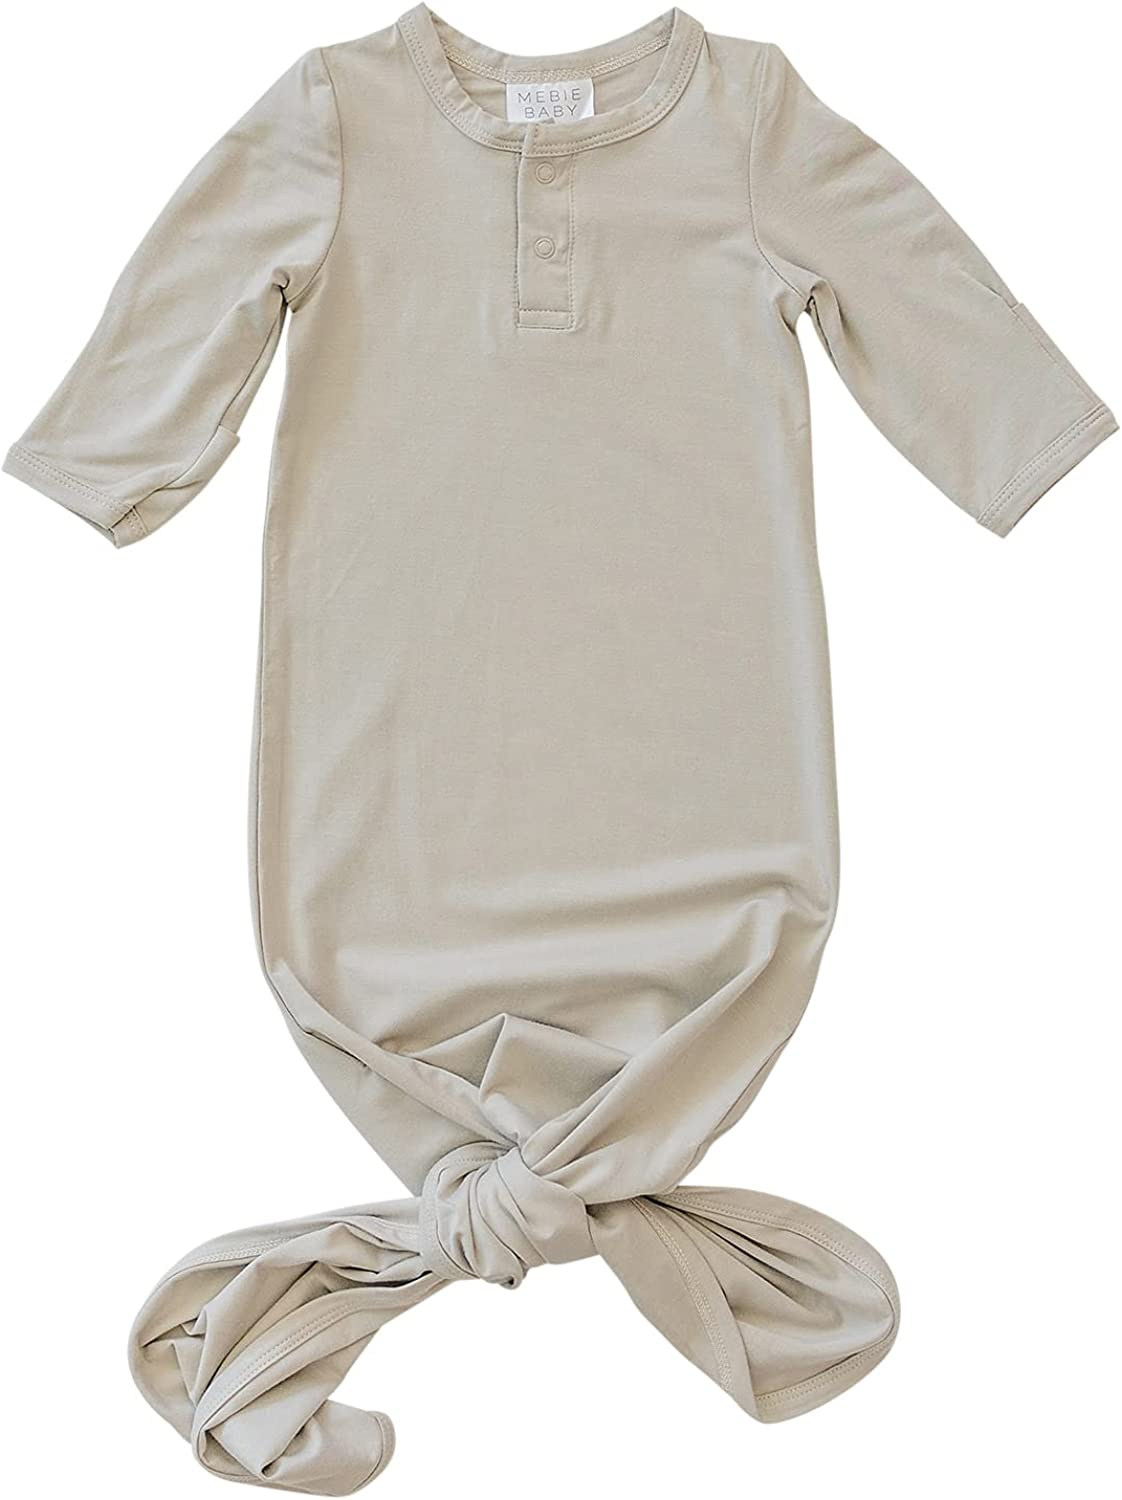 Mebie Baby Stretch Knot Unisex Gowns